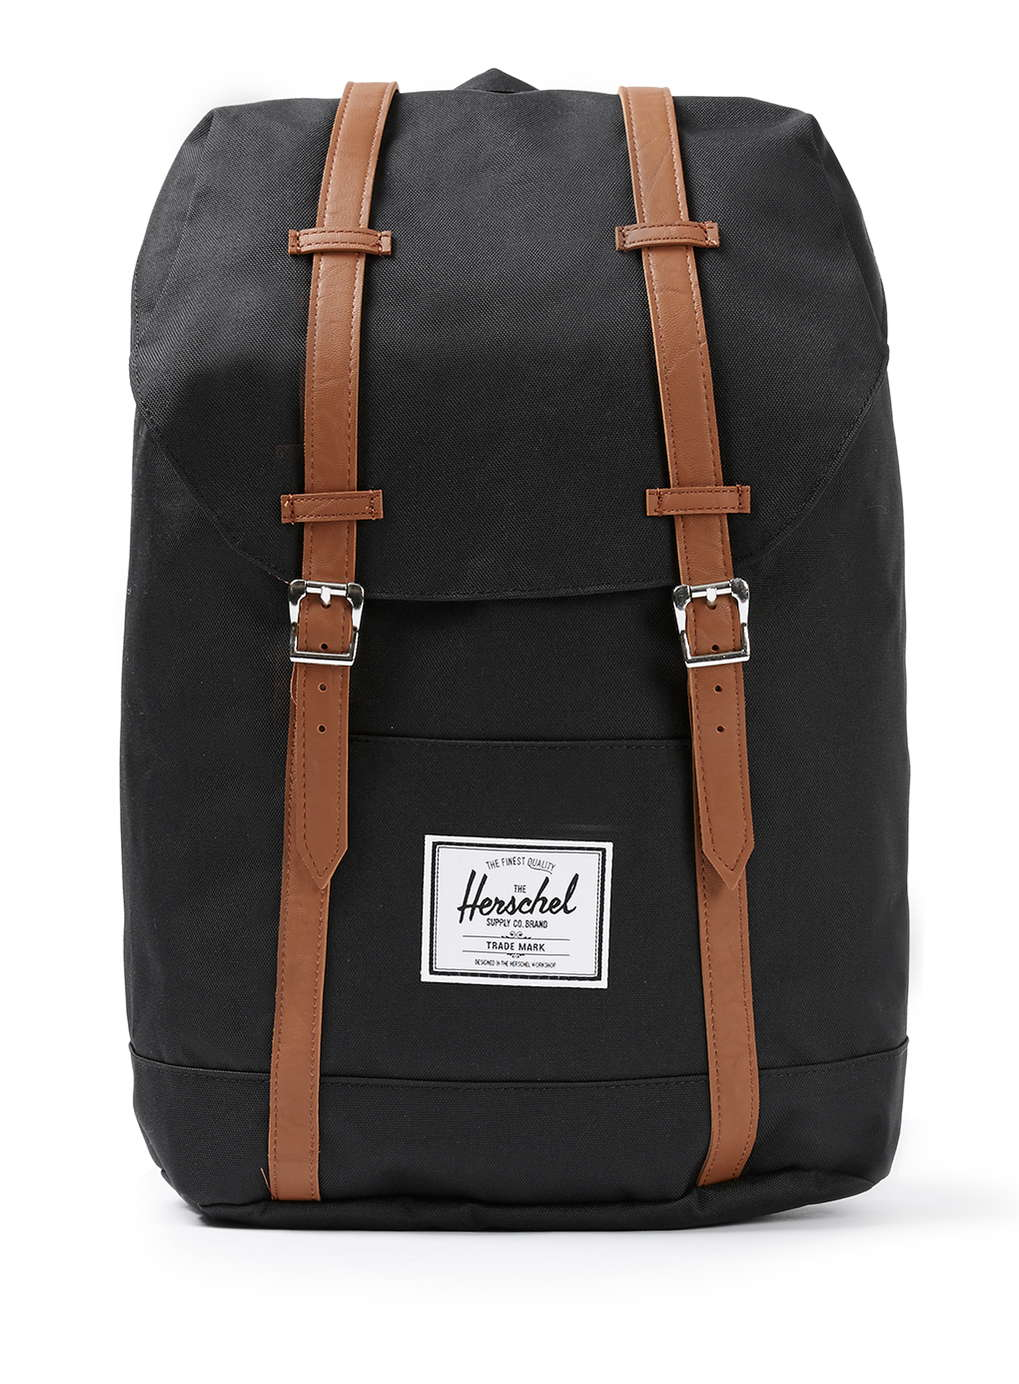 herschel supply co black backpack in black for men lyst. Black Bedroom Furniture Sets. Home Design Ideas